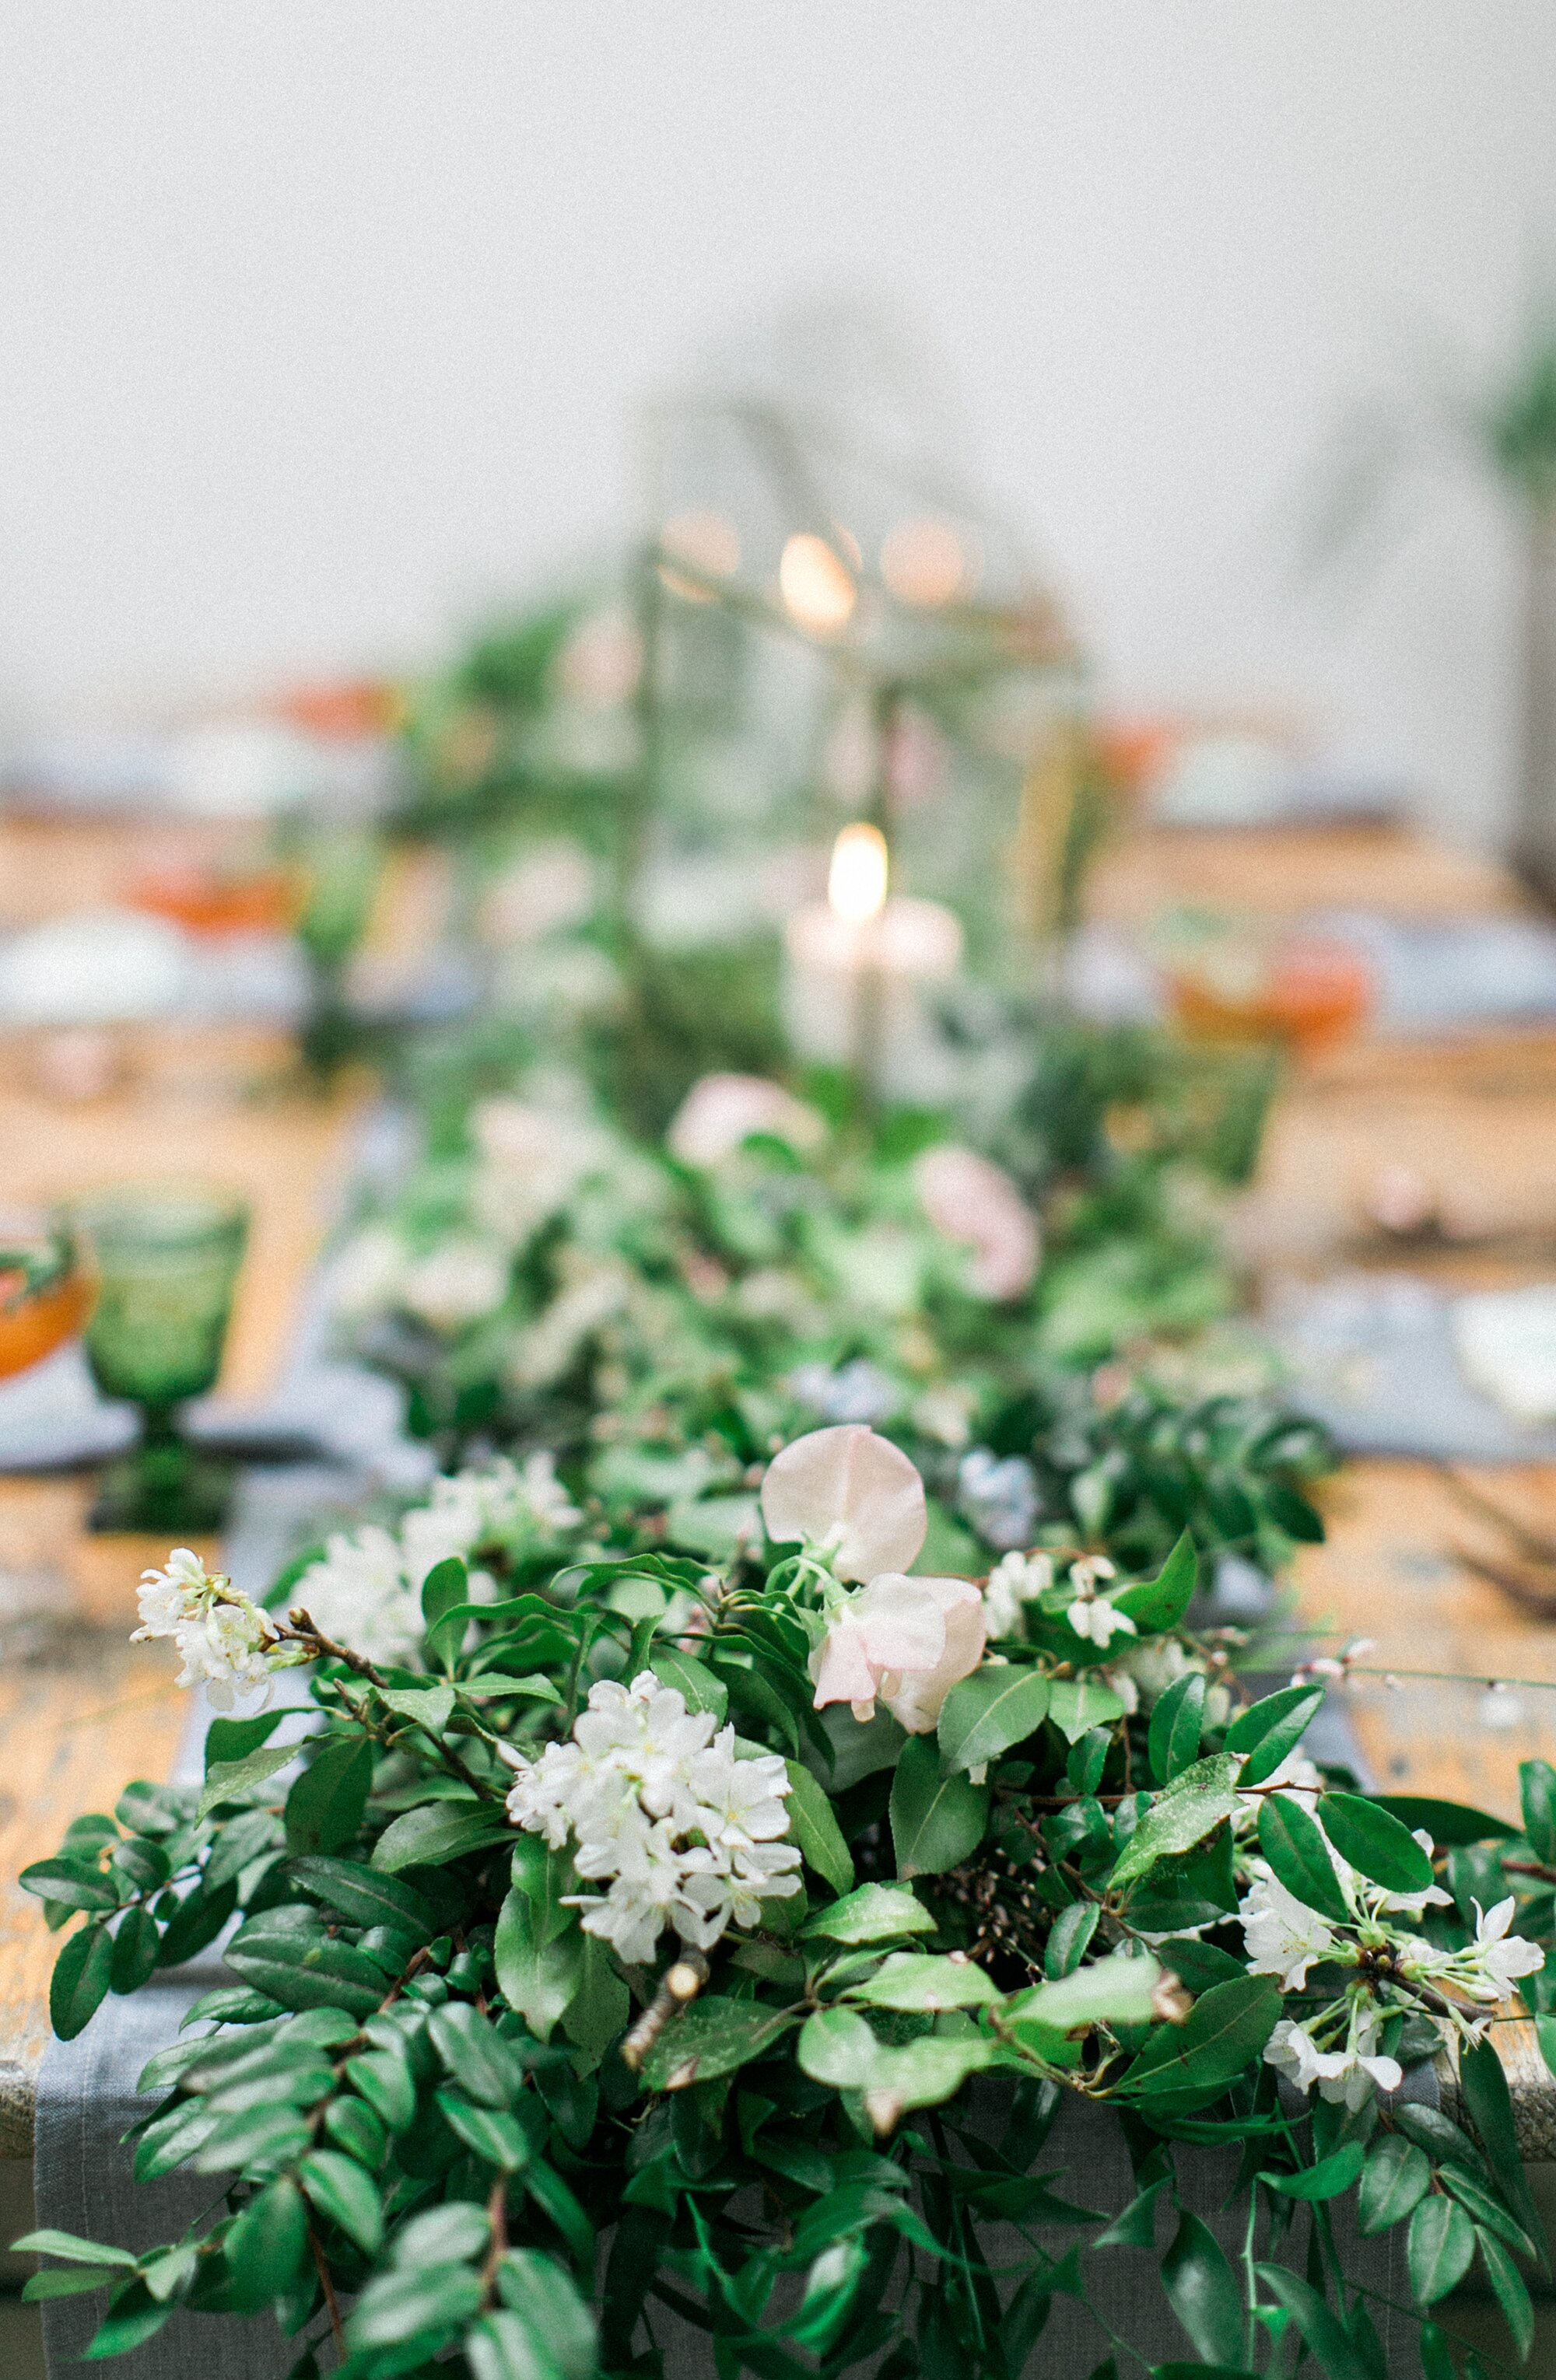 25 Bridal Shower Centerpieces The Bride To Be Will Love Martha